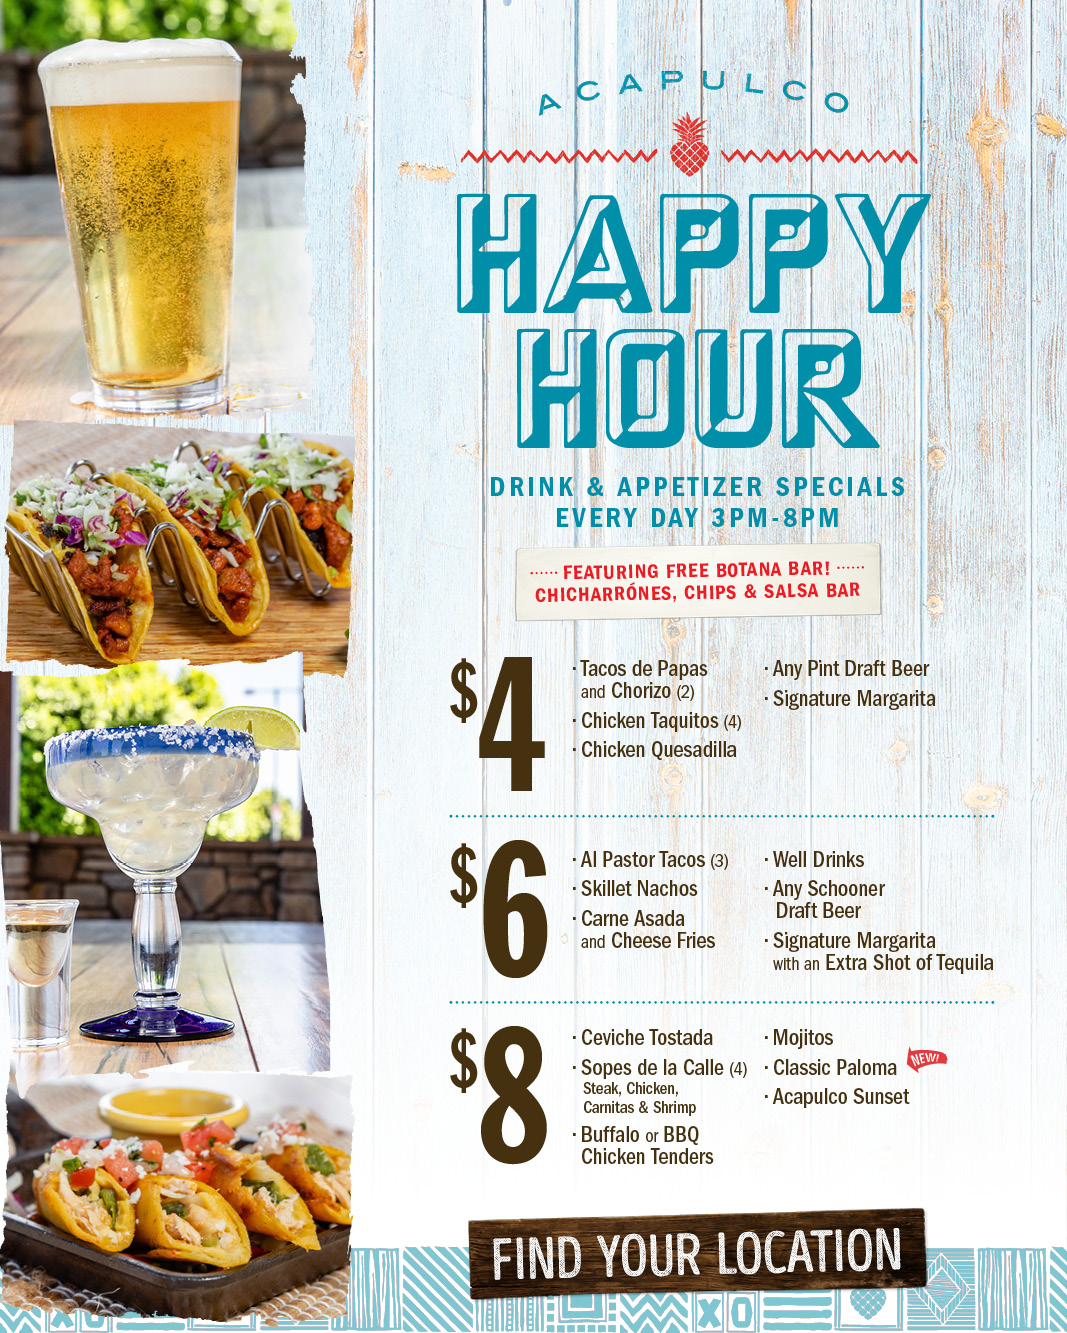 Offer: Acapulco Happy Hour, Drink & appetizer specials. Every day 3pm - 8pm. Featuring Free Botana Bar! Chicharrones, Chips & Salsa bar. $4 Tacosde Papas and Chorizo (2), Chicken Taquitos (4), Chcicken Quesadilla, Any Pint Draft Beer, SIgnature Margarita. $6 Al Pastor Tacos (3), Skillet Nachos, Carne Asada and Cheese Fries, well Drinks, Any schooner Draft Beer, Signature Margarita with an Extra shot of Tequila. $8 Ceviche Tostada, Sopes de la Calle (4) - Steak -chicken -Carnitas & Shrimp, Buffalo or BBQ Chicken Tenders, Mojitos, Classic Paloma, Acapulco Sunset.